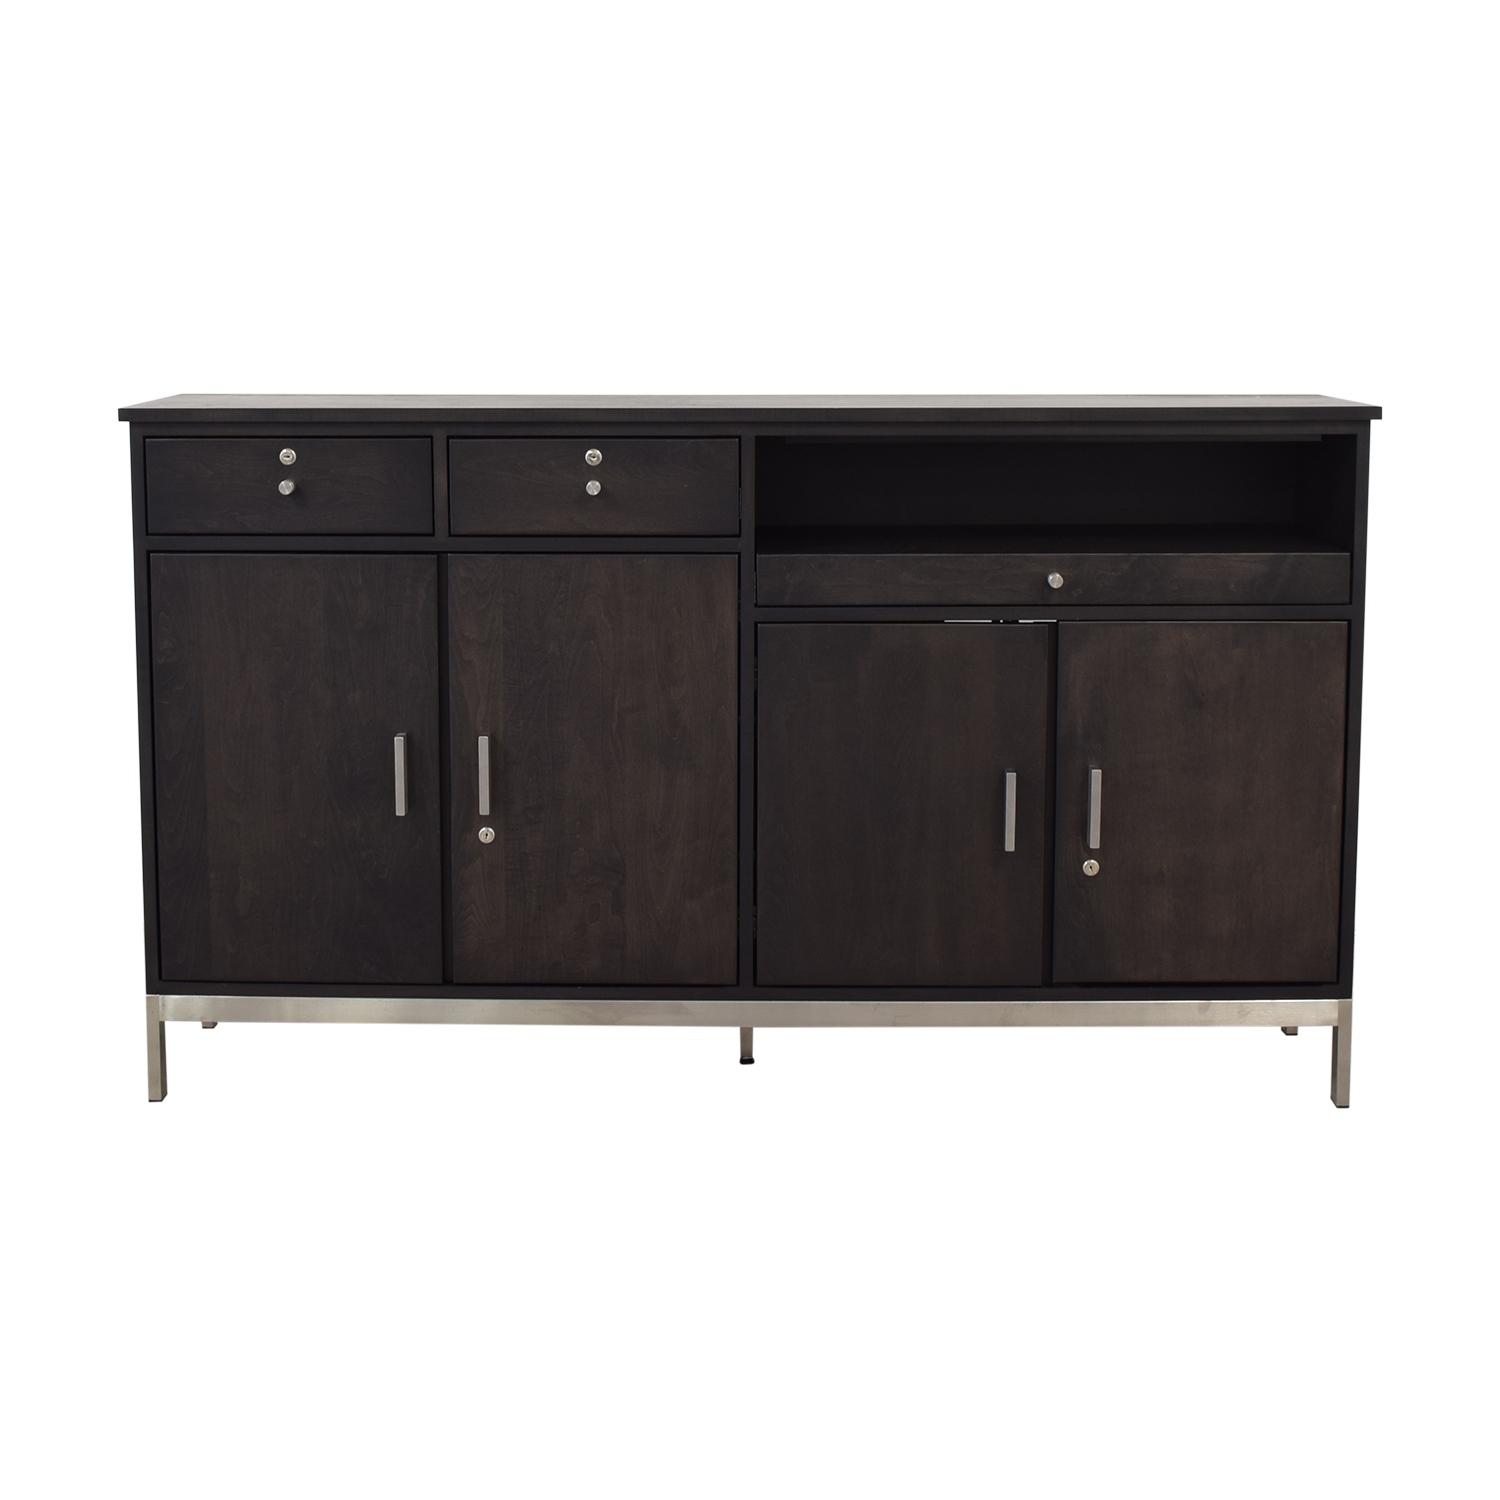 Room & Board Two-Drawer Custom Storage Cabinet / Cabinets & Sideboards